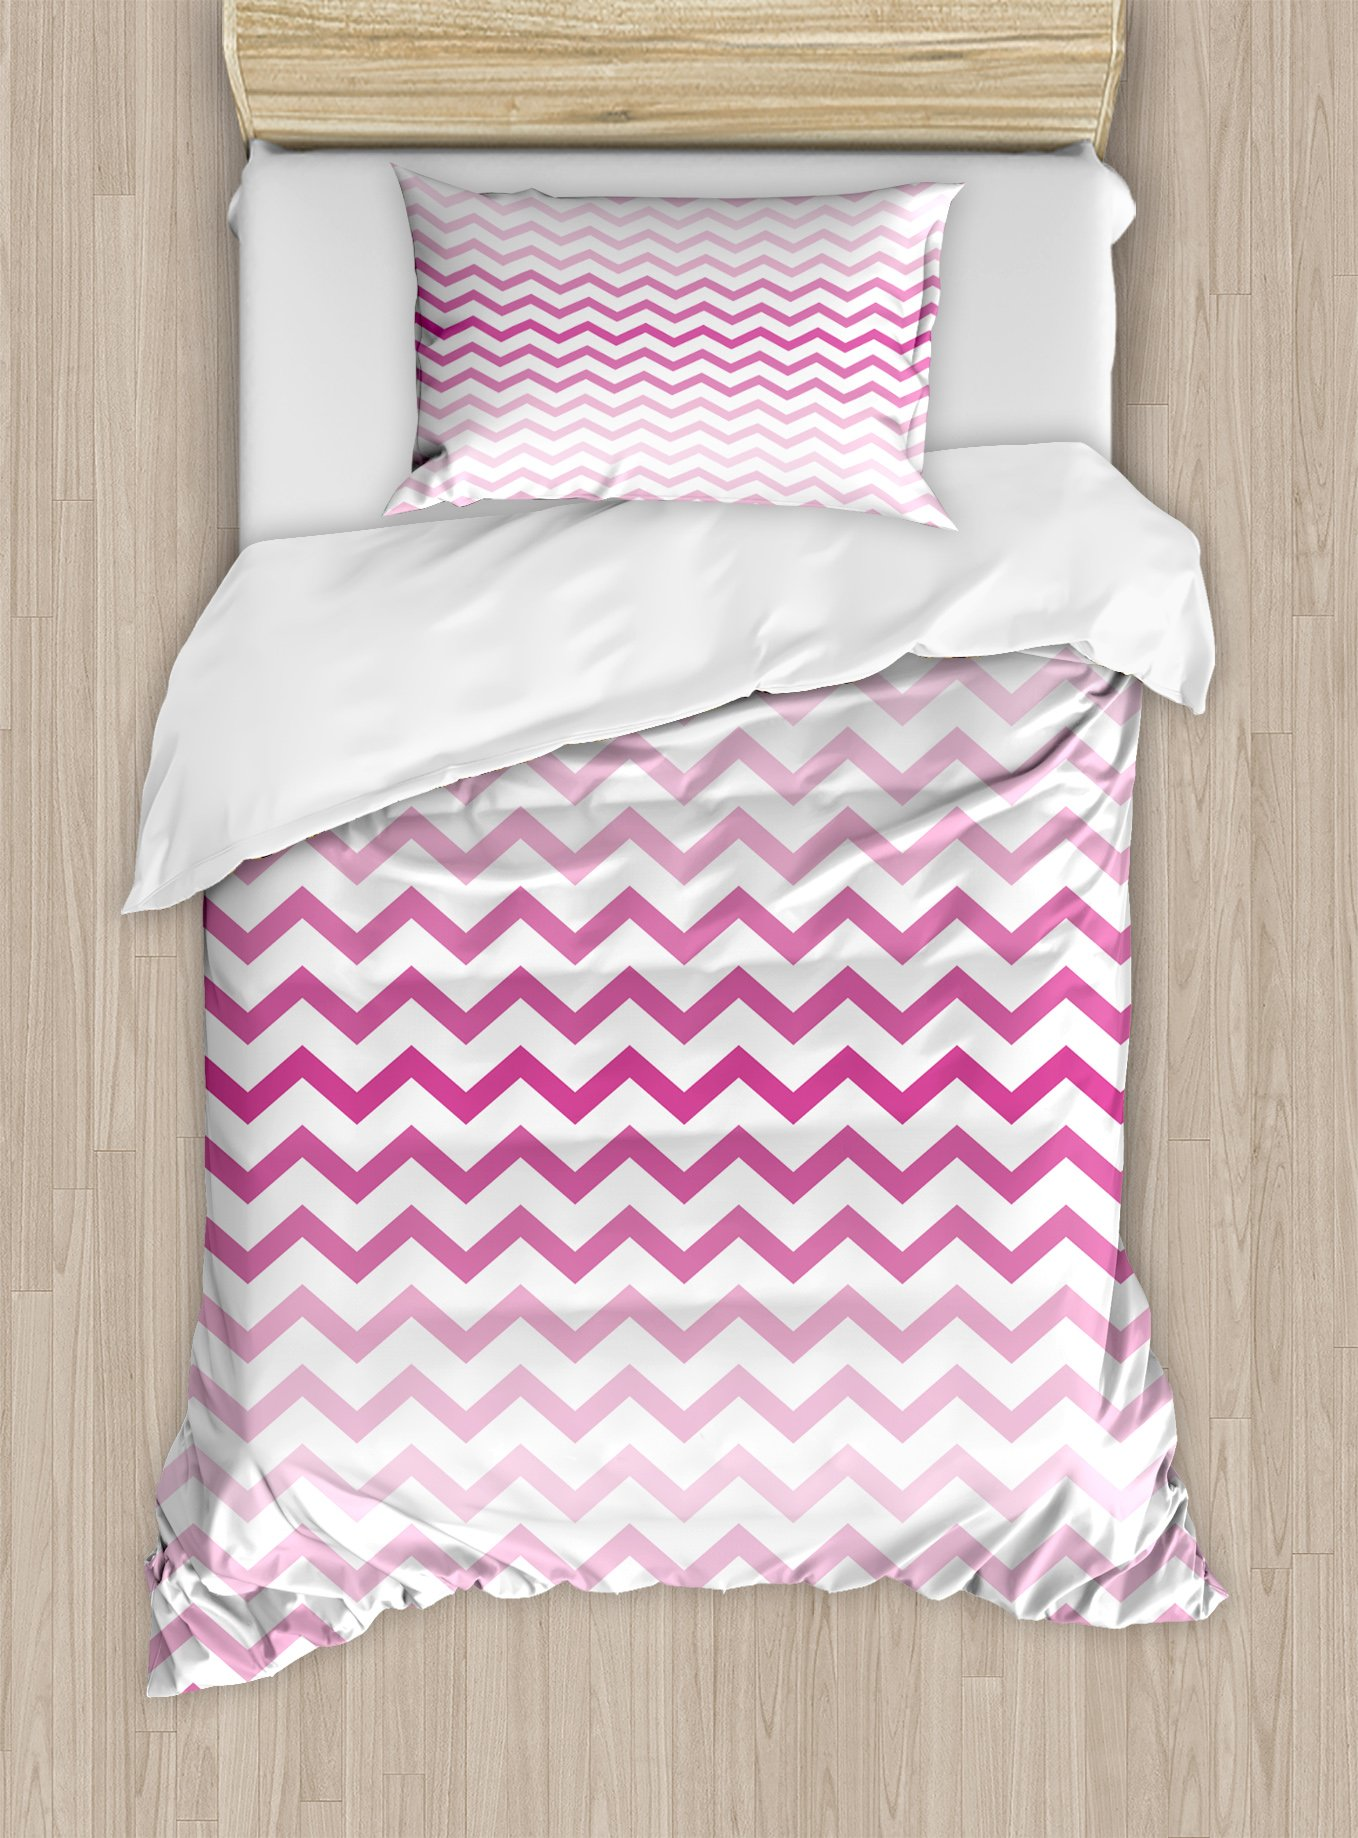 Ambesonne Pale Pink Duvet Cover Set Twin Size, Chevron Zigzag Pattern with Twisted Parallel Lines in Vibrant Tones Graphic, Decorative 2 Piece Bedding Set with 1 Pillow Sham, Magenta White